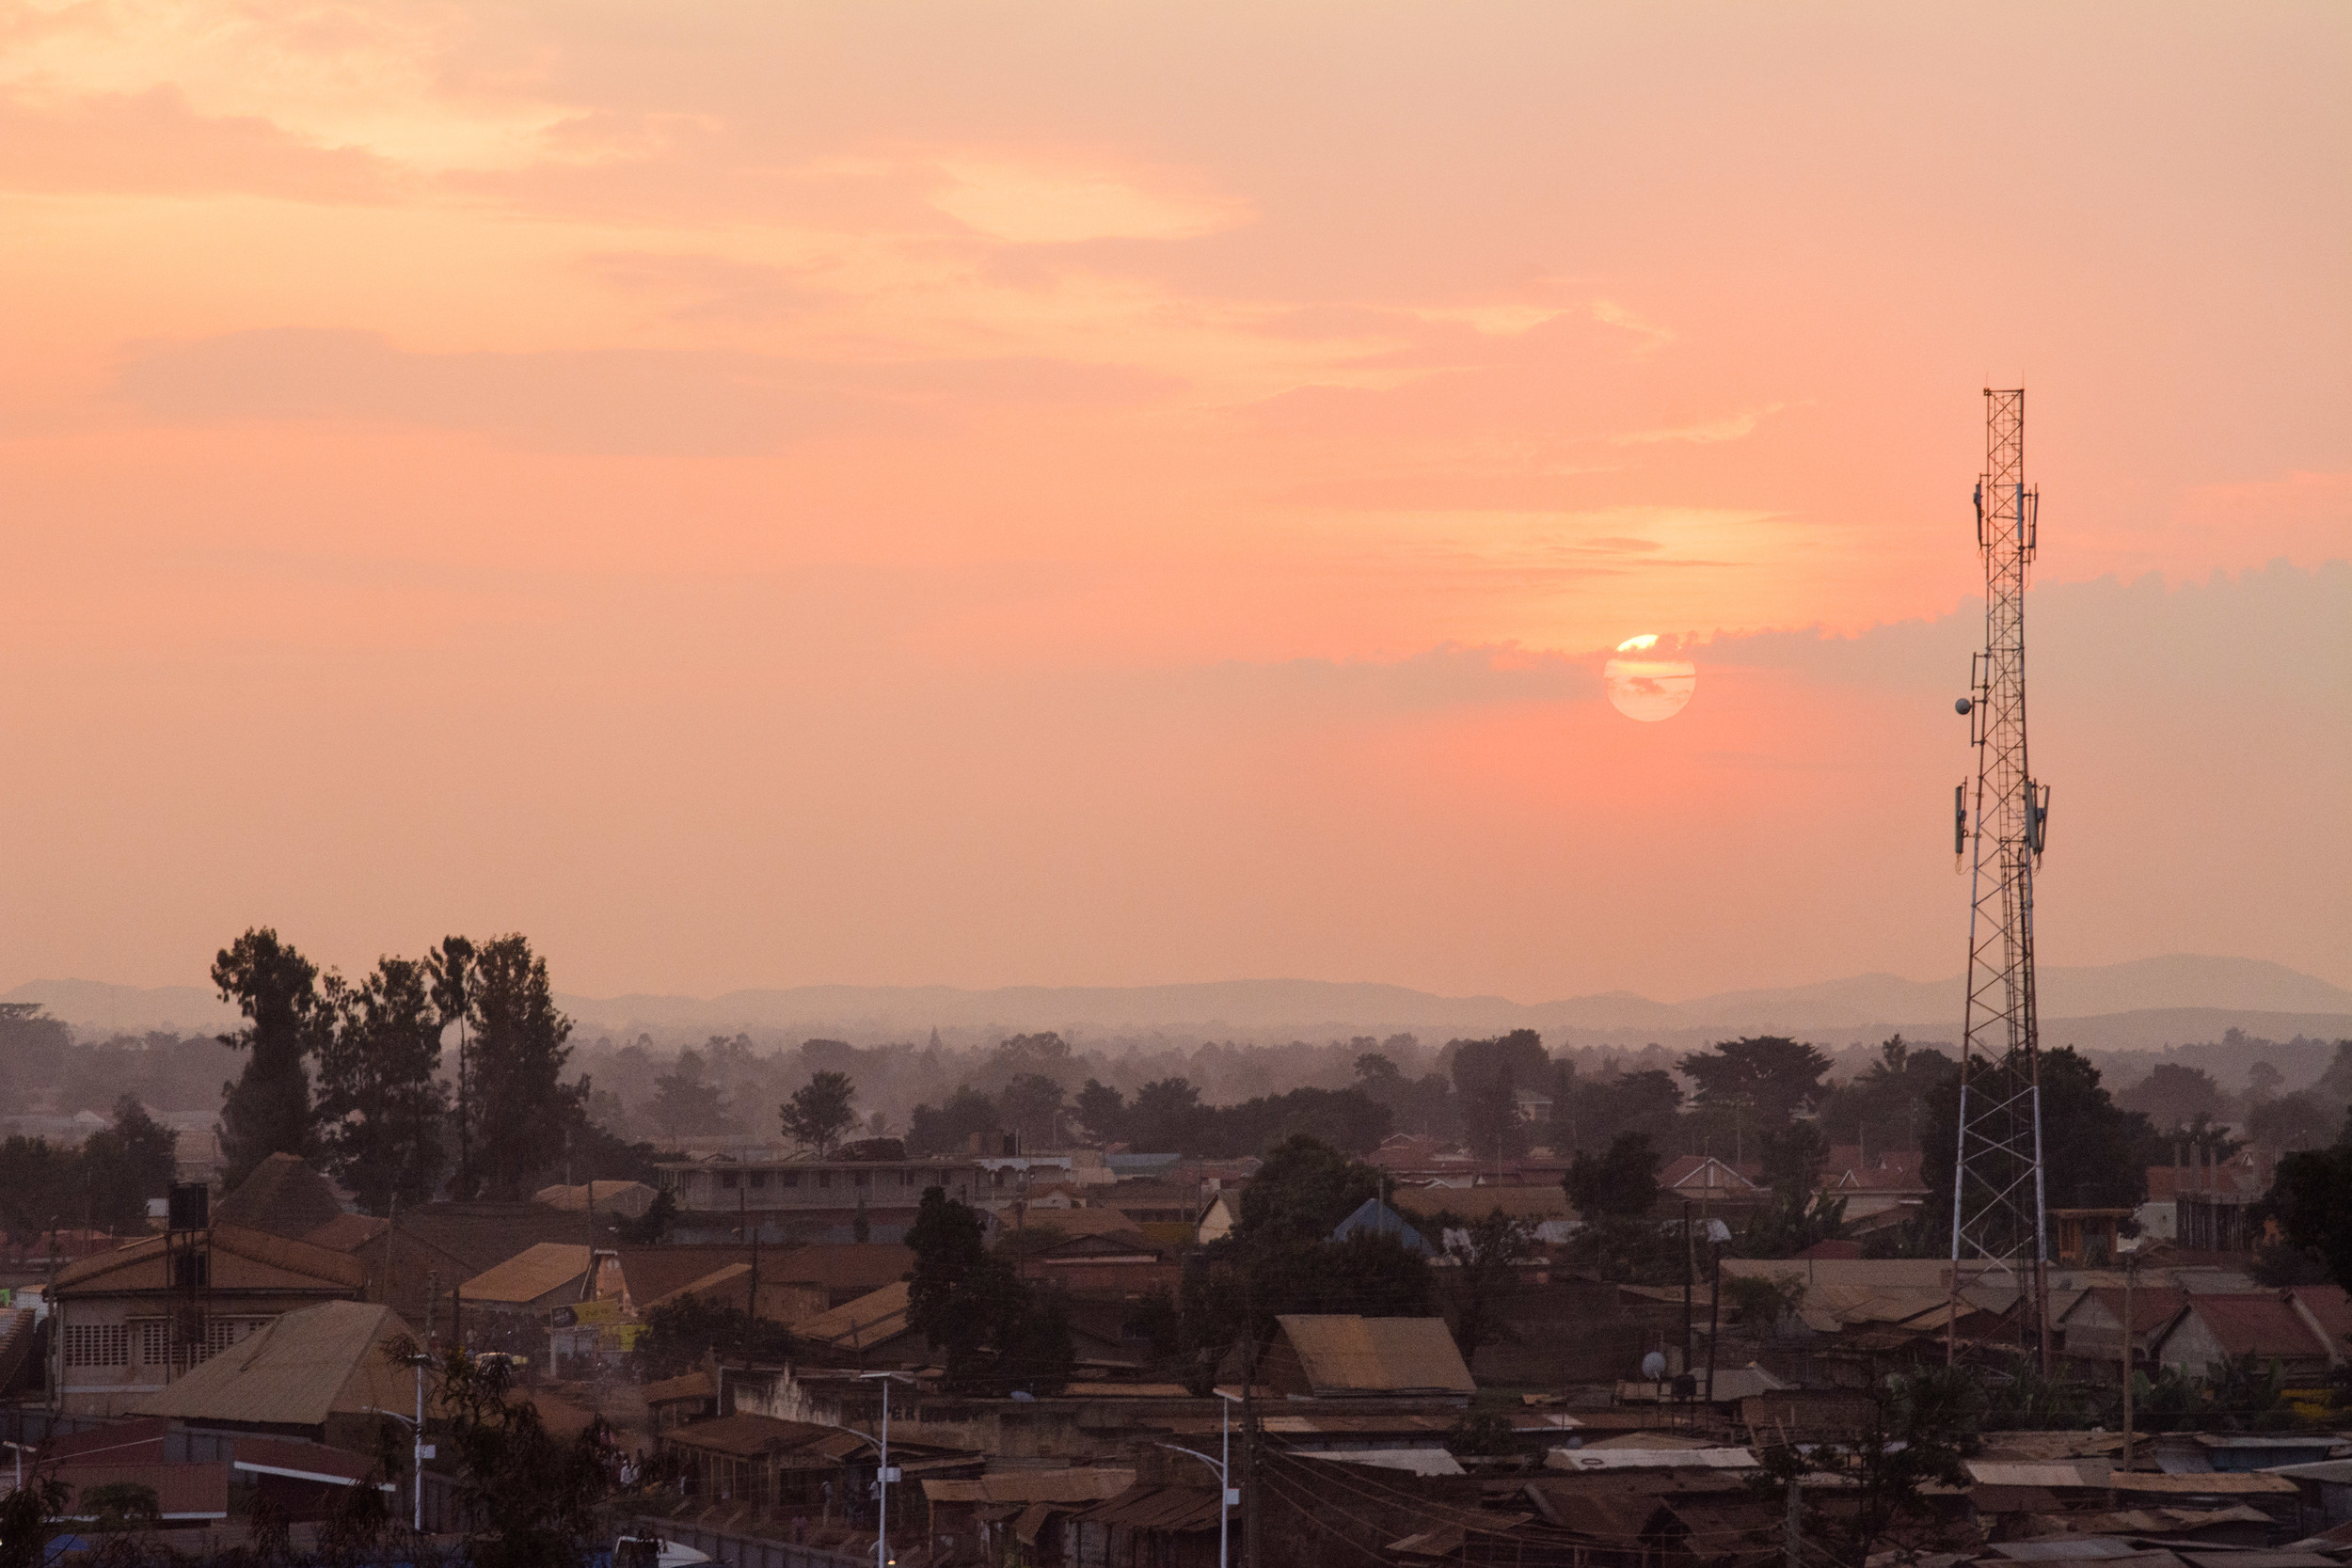 Sunset in Busia